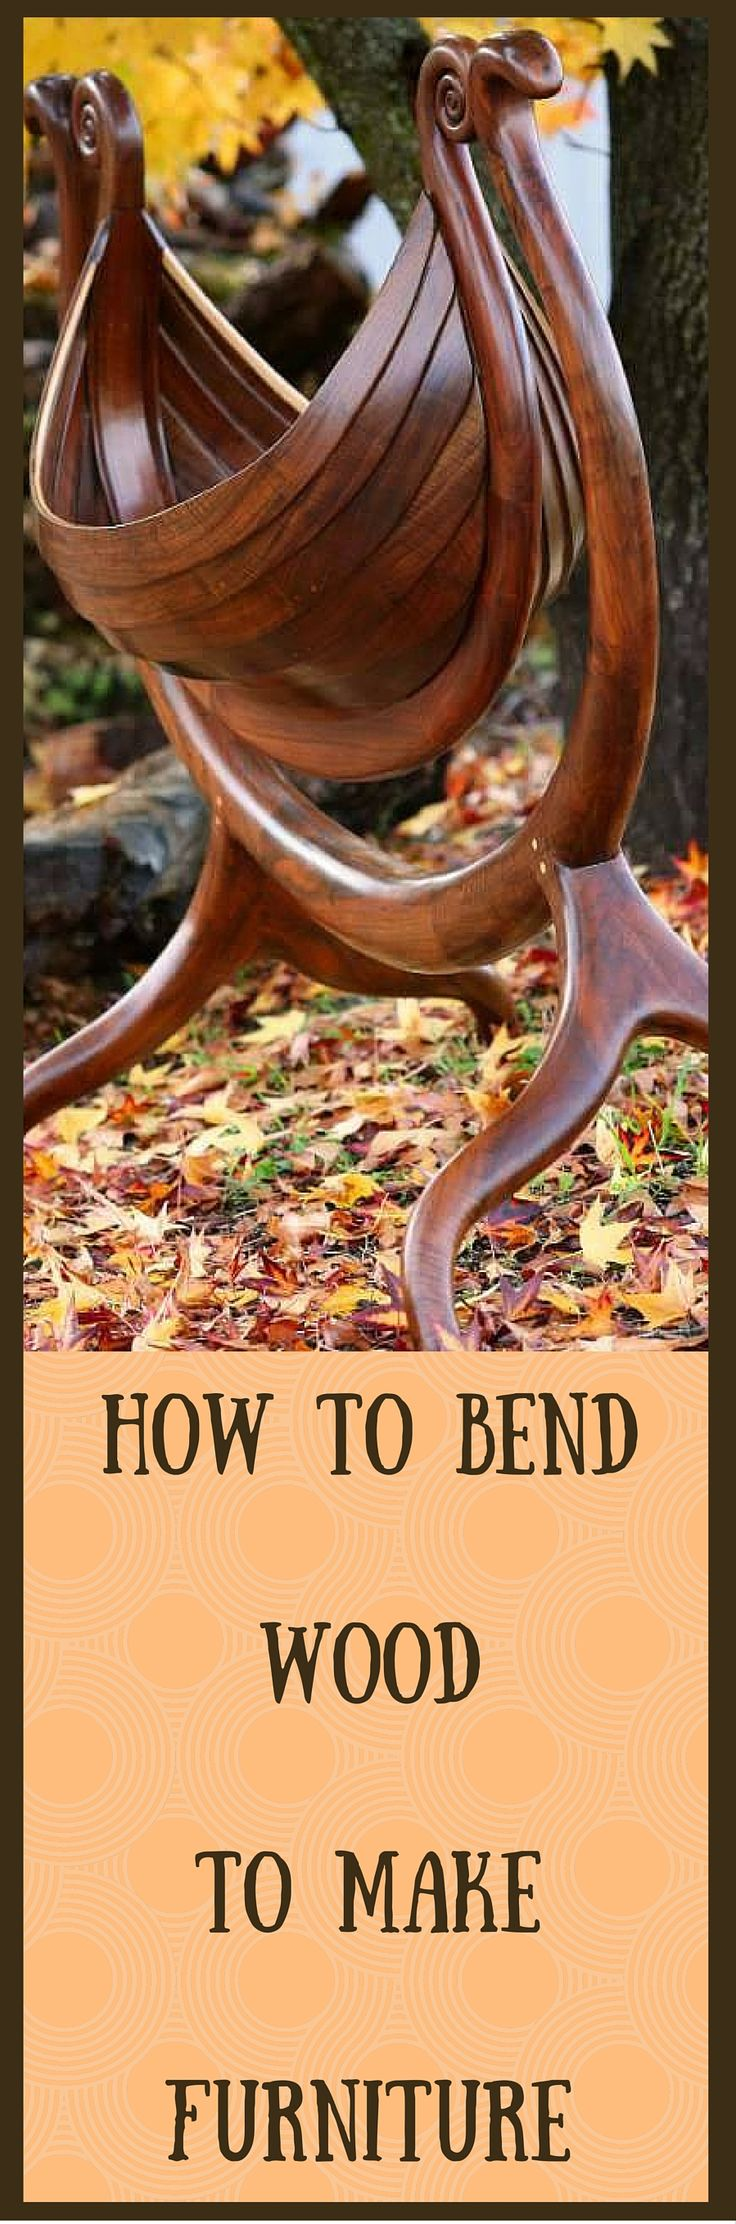 How To Bend Wood To Make Furniture: http://vid.staged.com/w4Qs